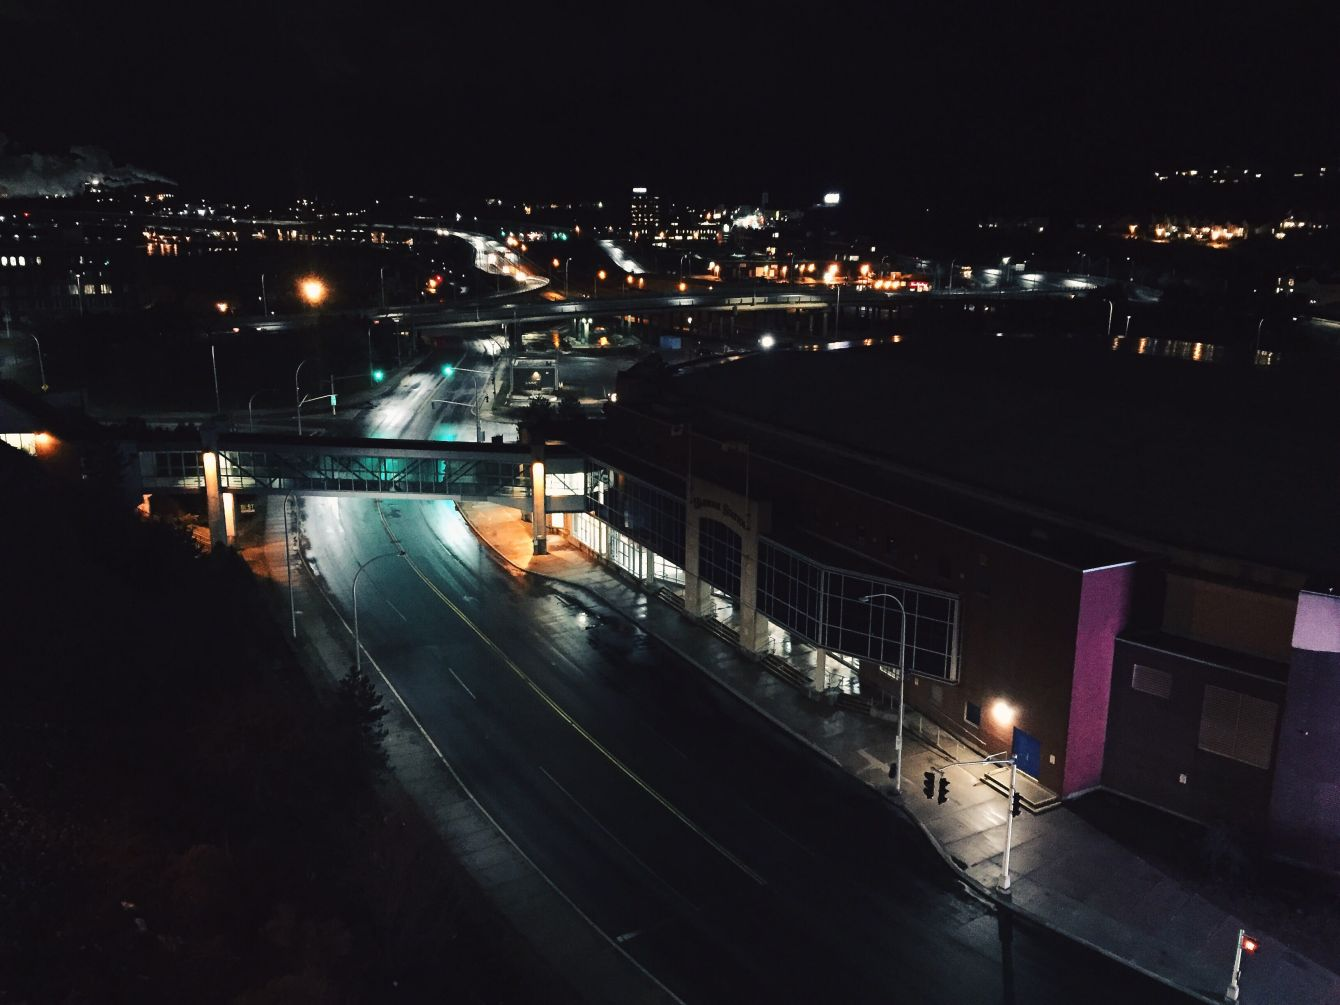 Click thumbnail to see details about photo - Harbour station road at night saint john